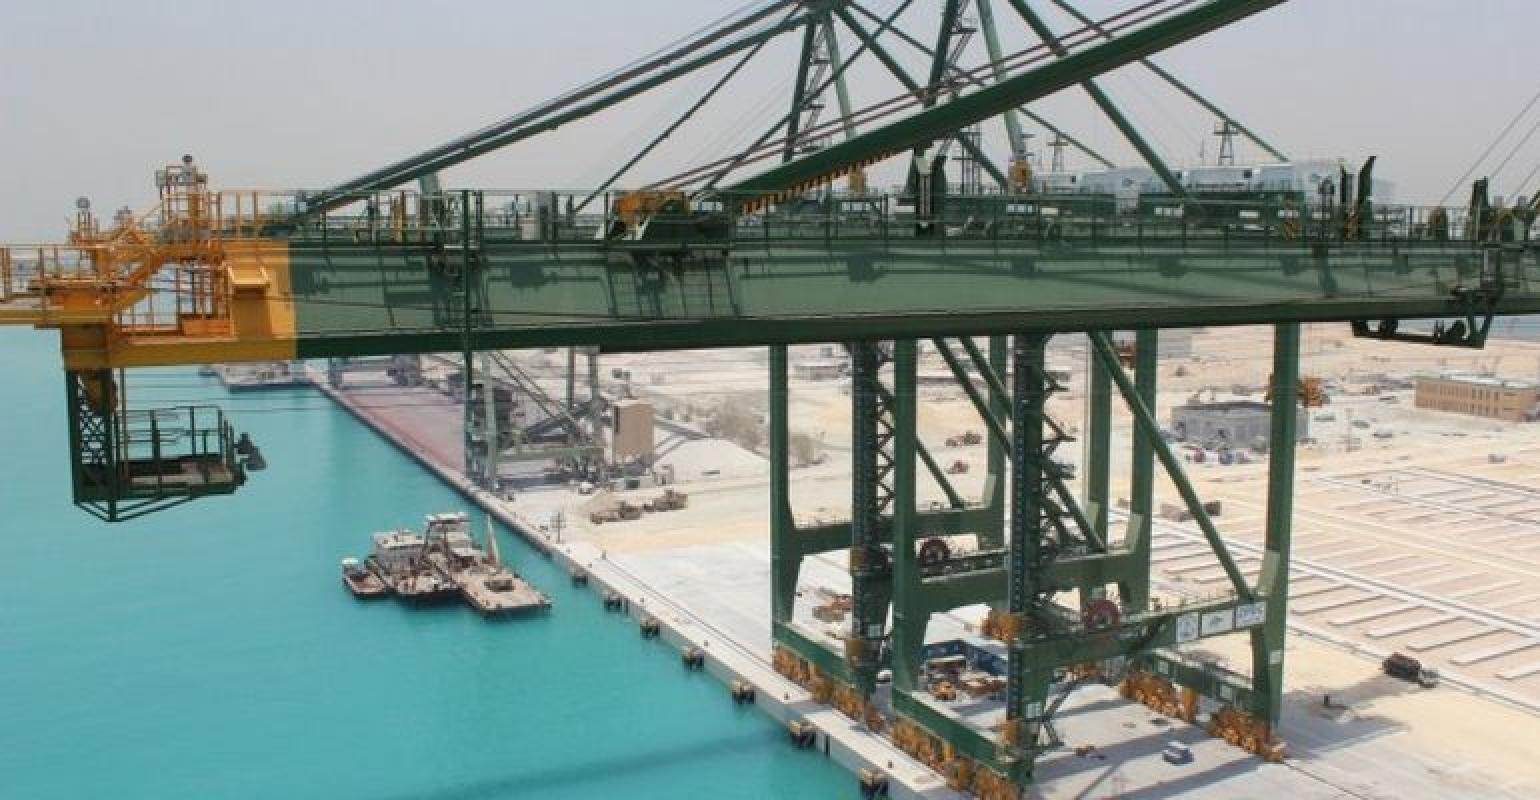 Saudi Global Ports Company takes over management of two other terminals